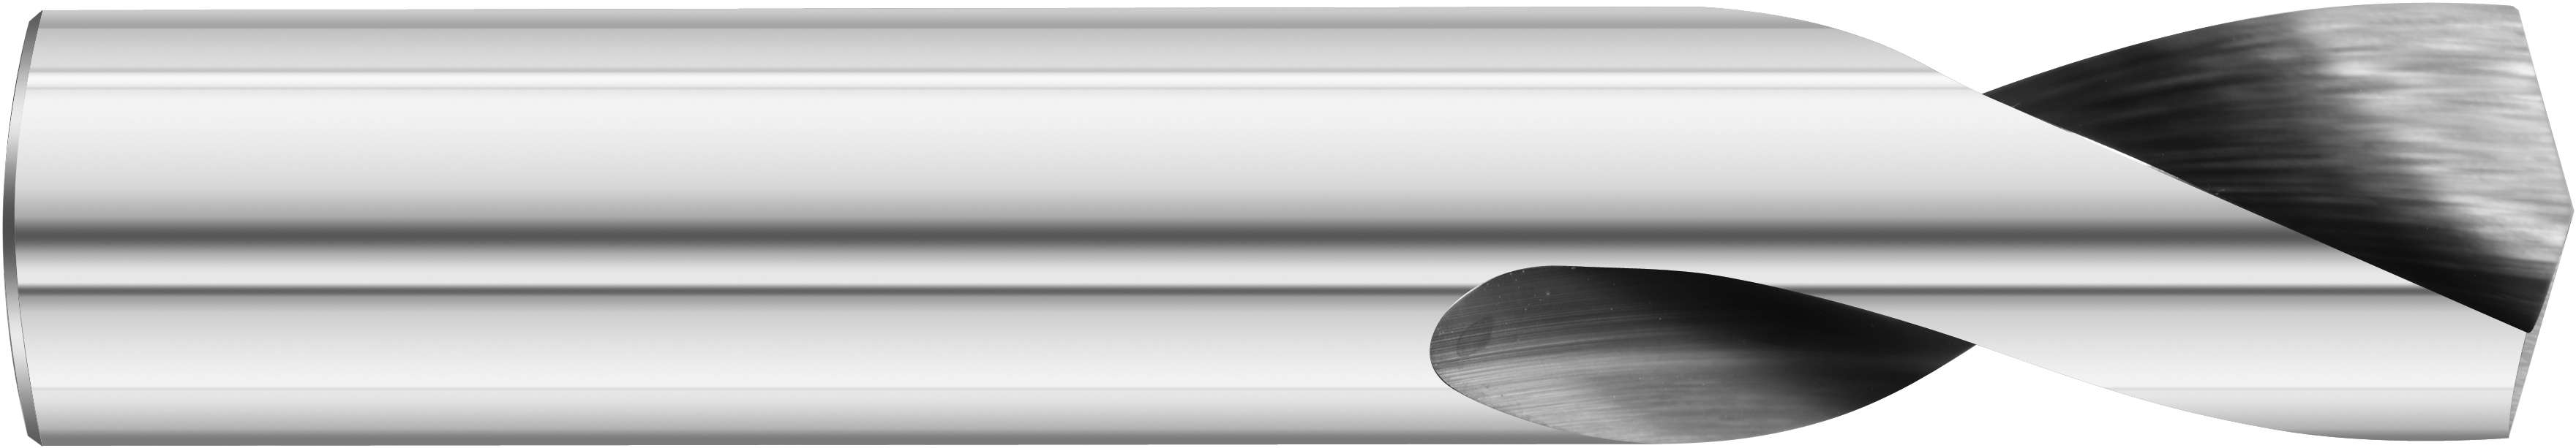 1/2 Solid Carbide Nc Spotting Dril 3xd Length Cam Relieved Se – 15790